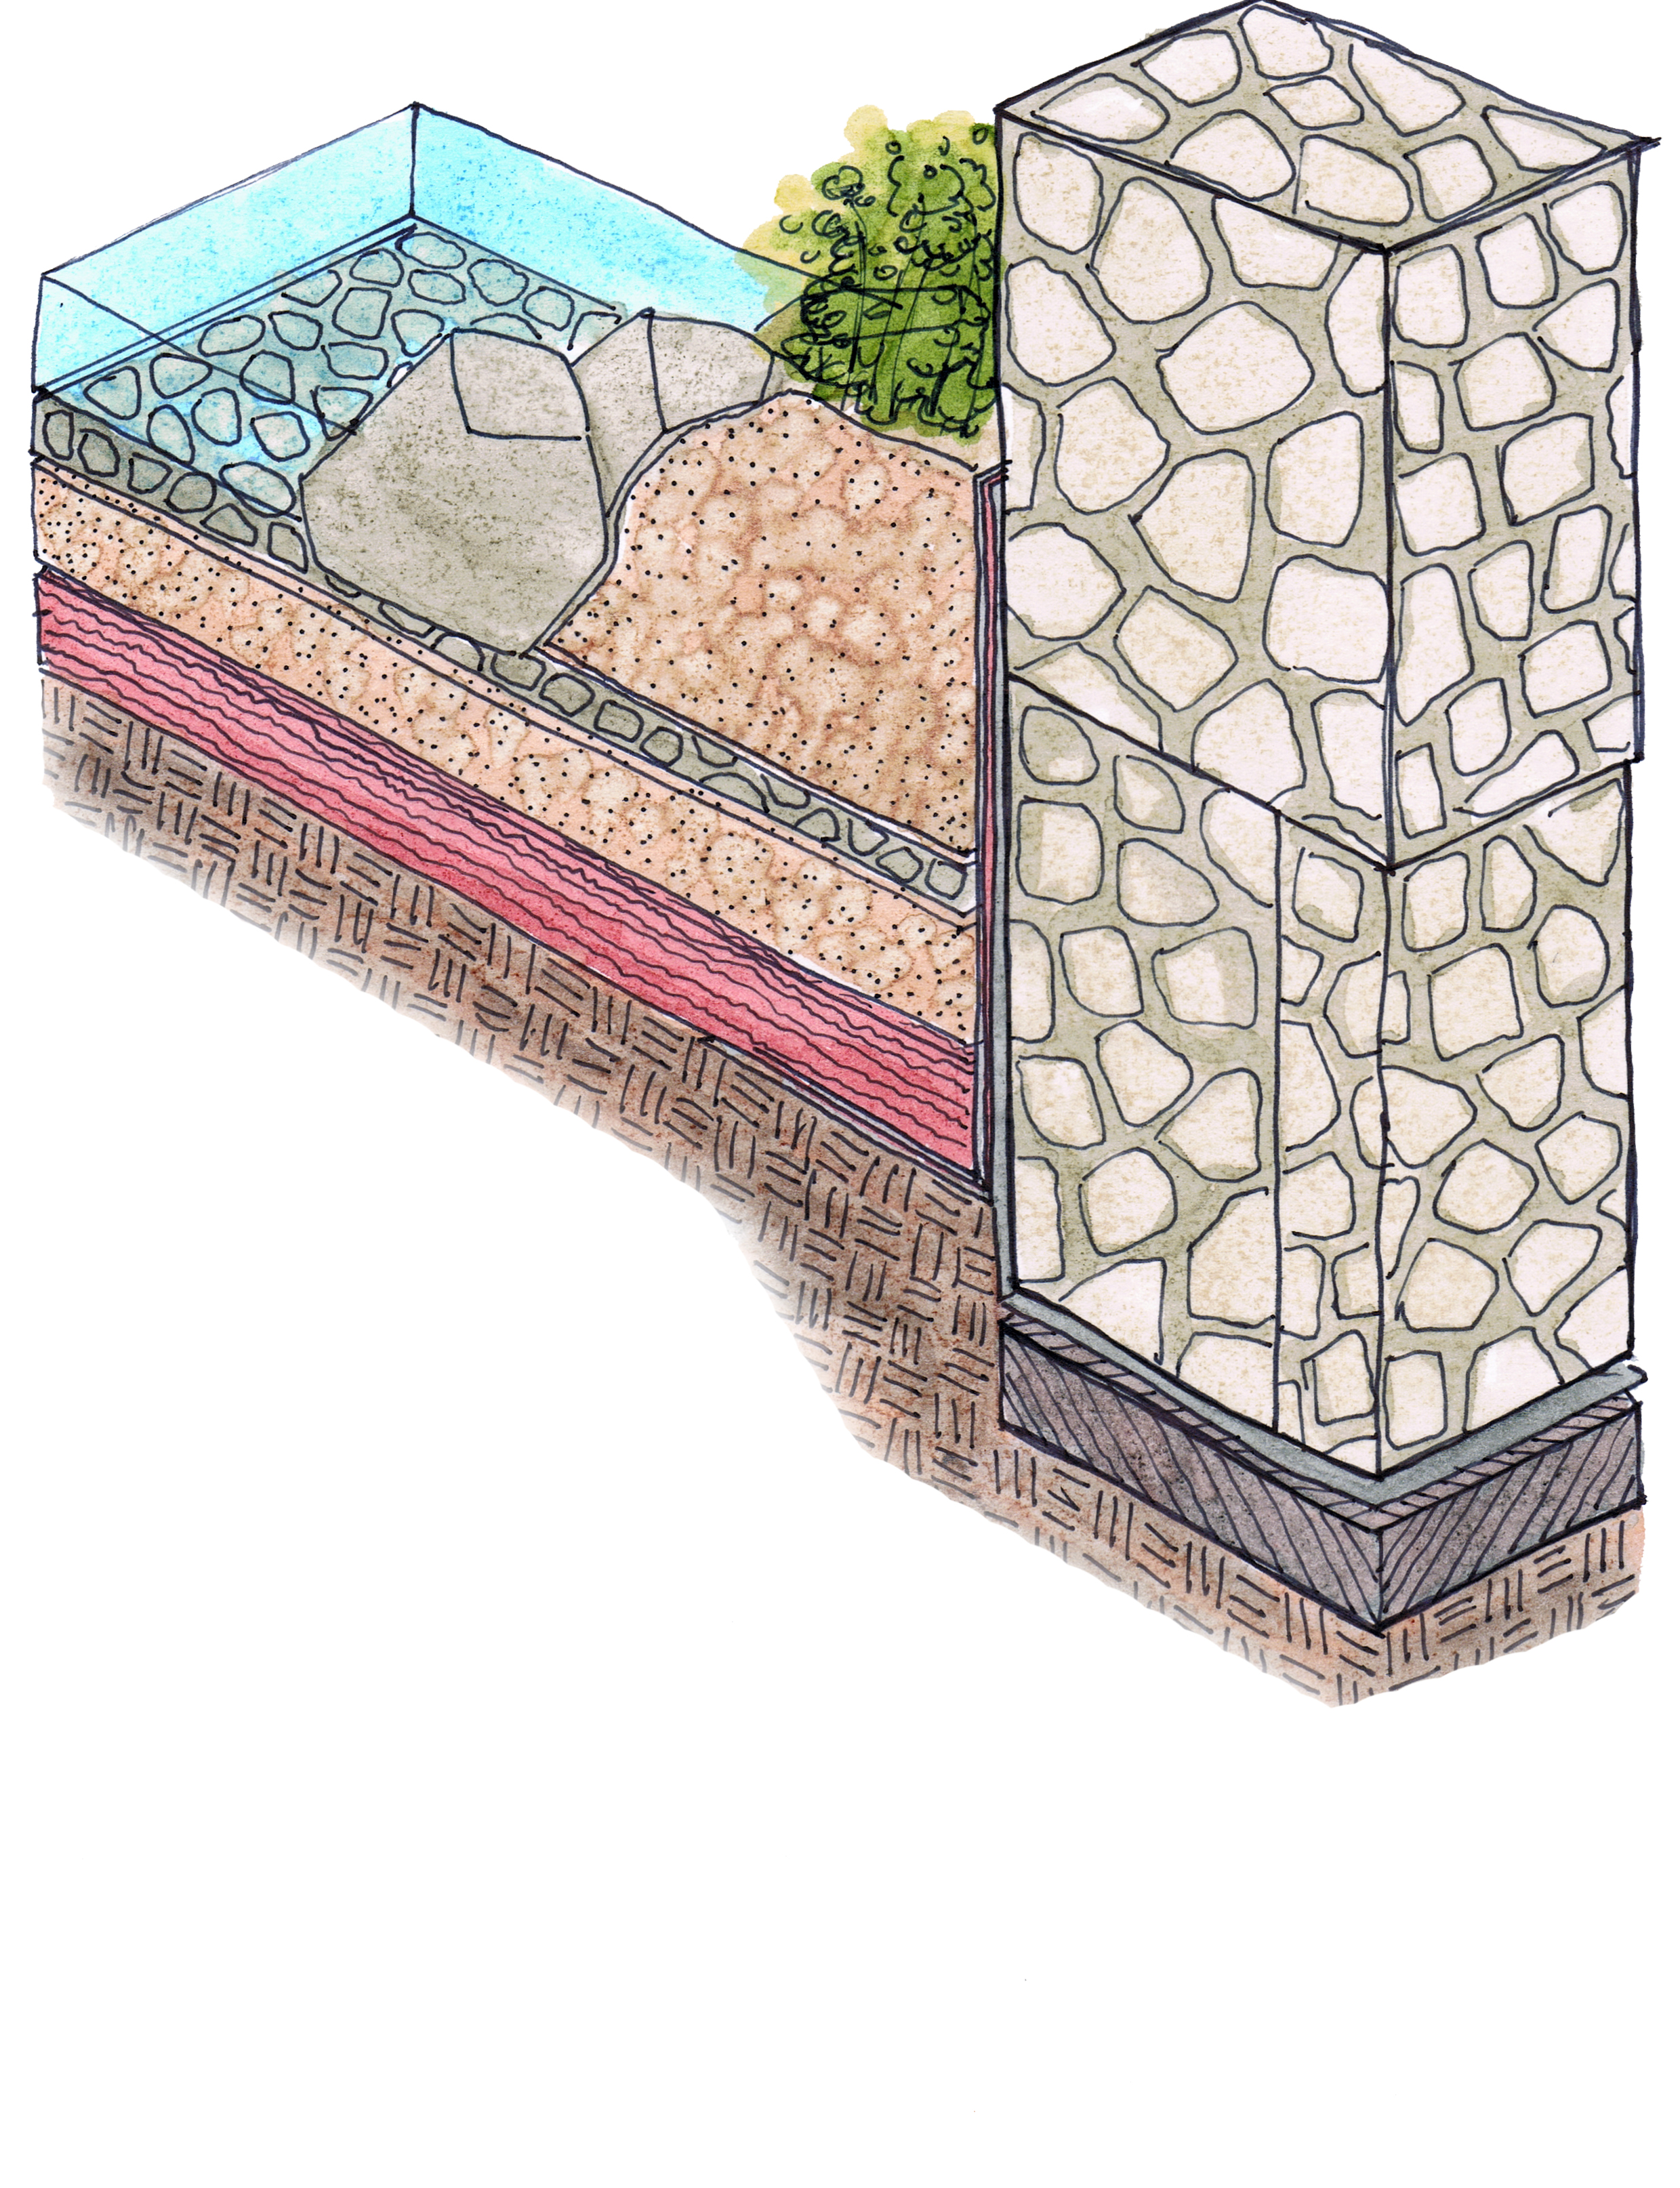 Illustration of a gabion as part of a constructed wetland